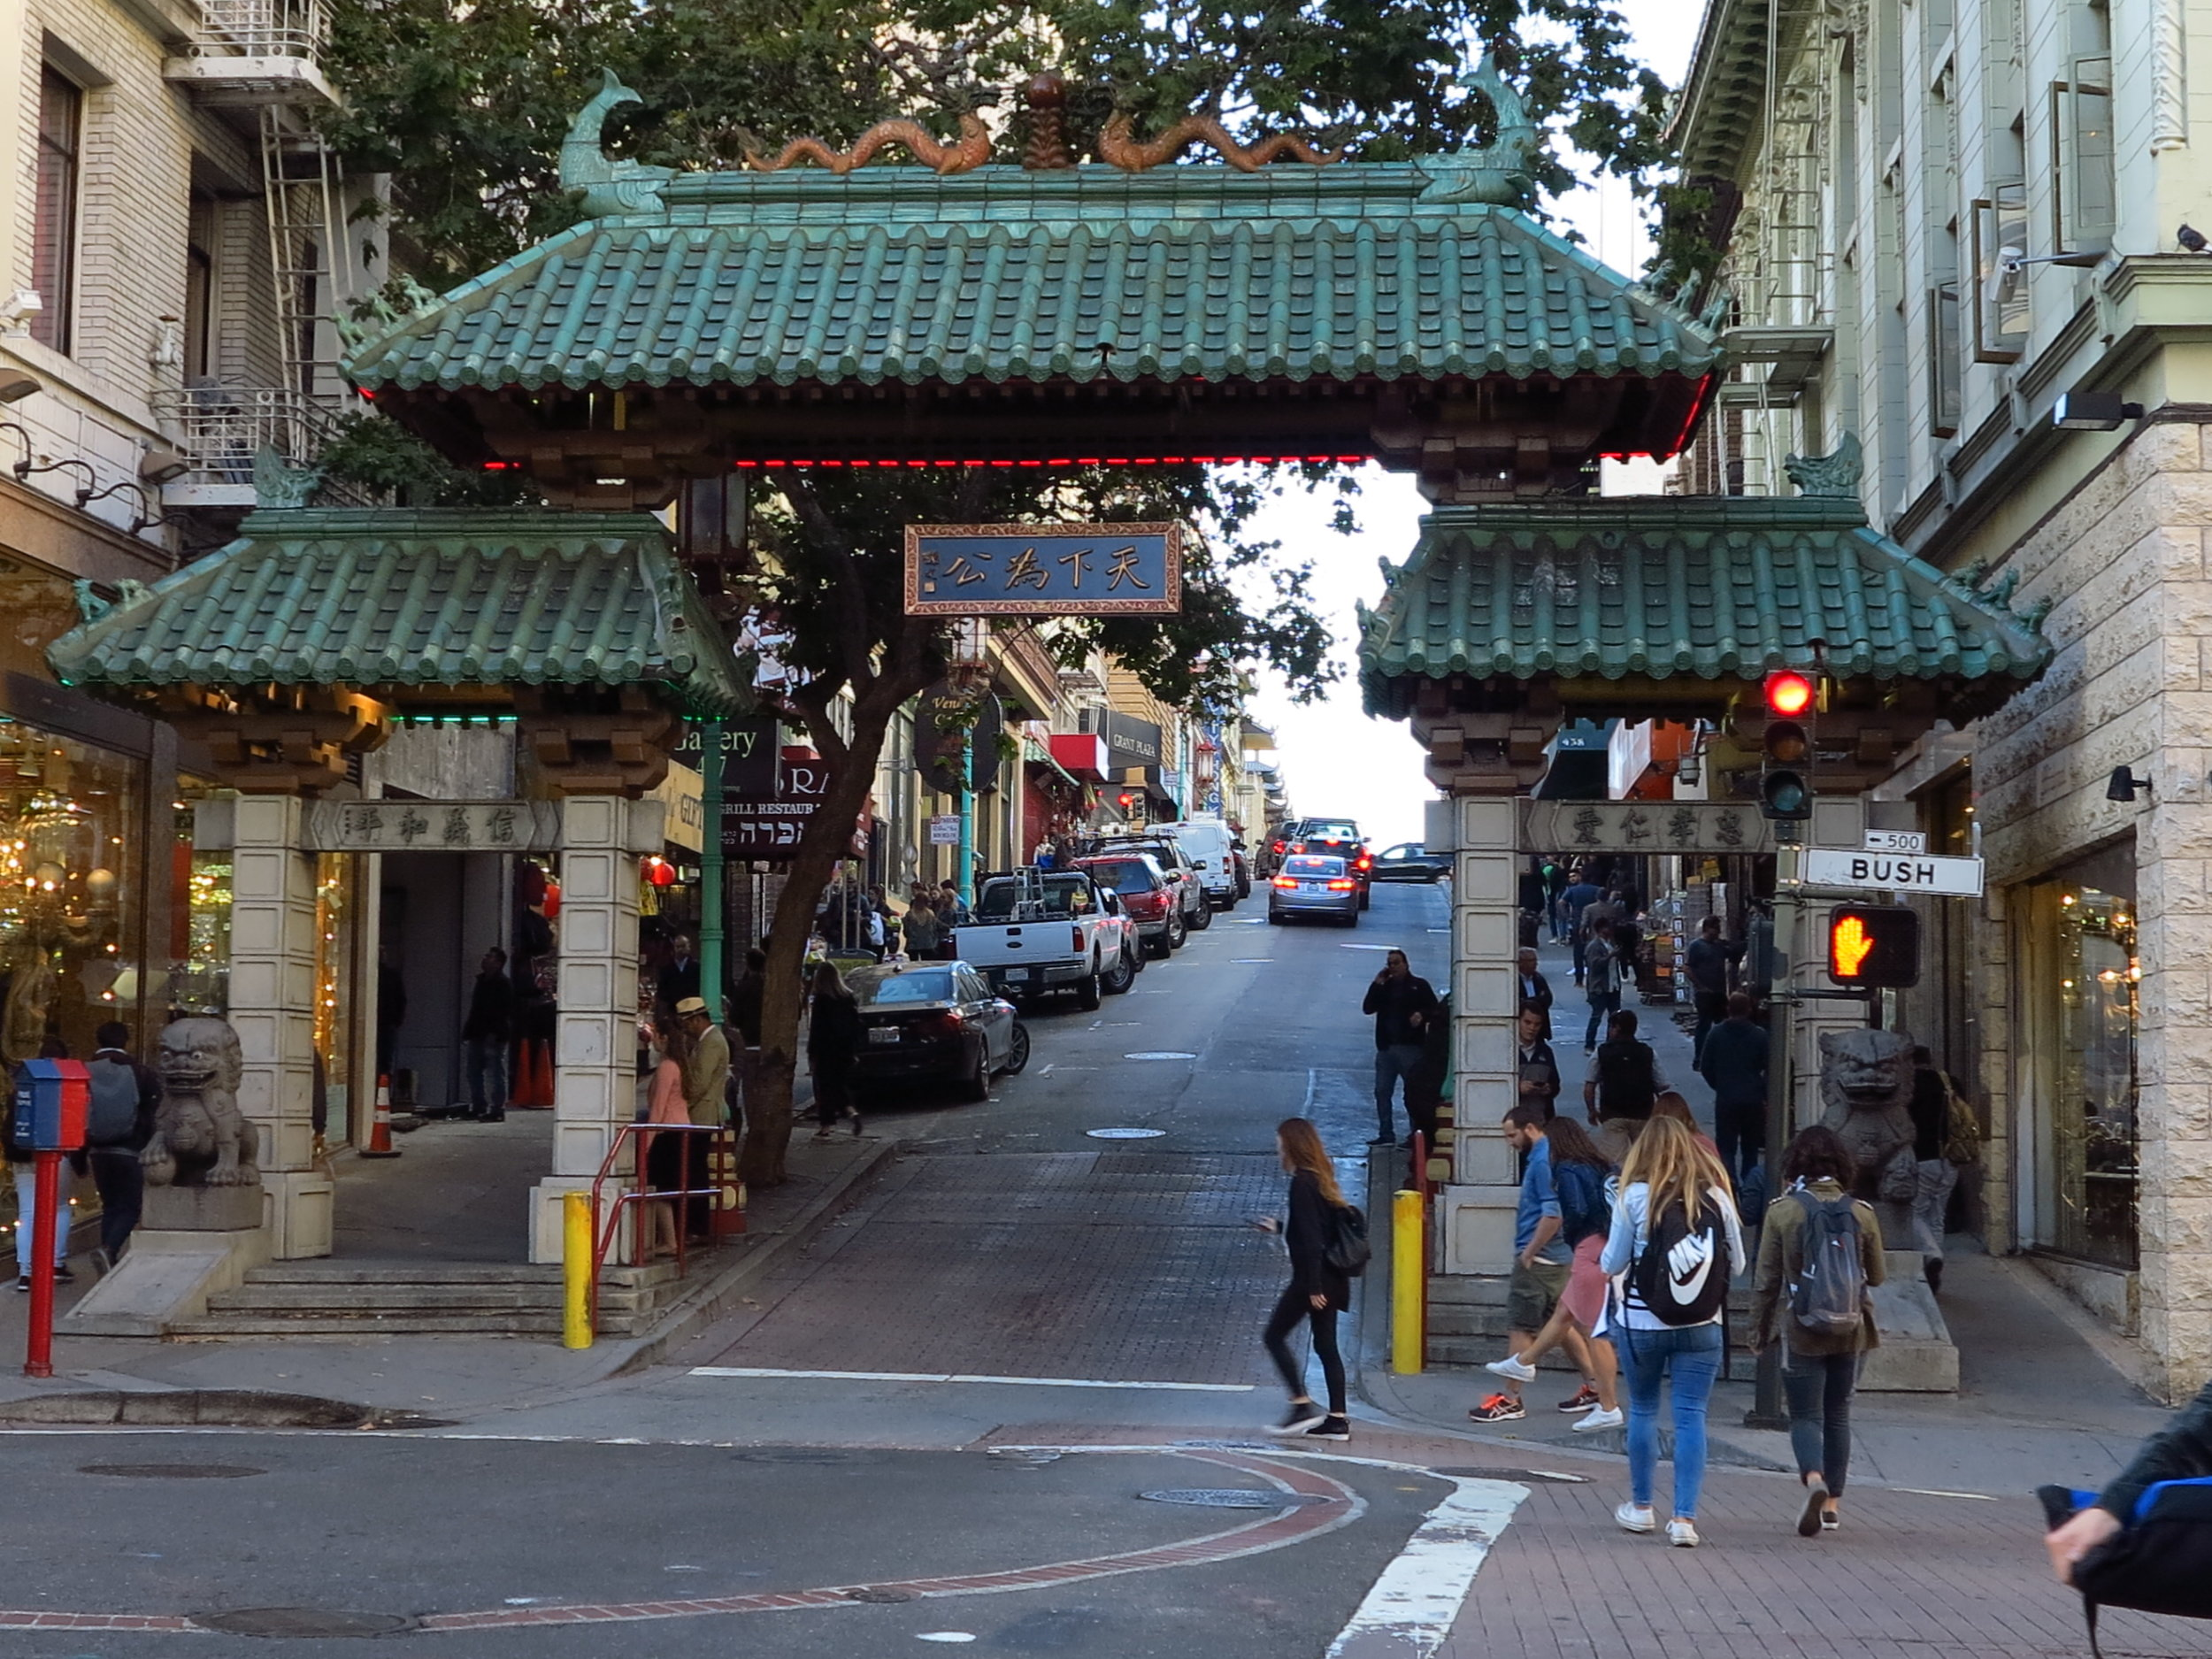 After a couple drinks we took an Uber to Chinatown.